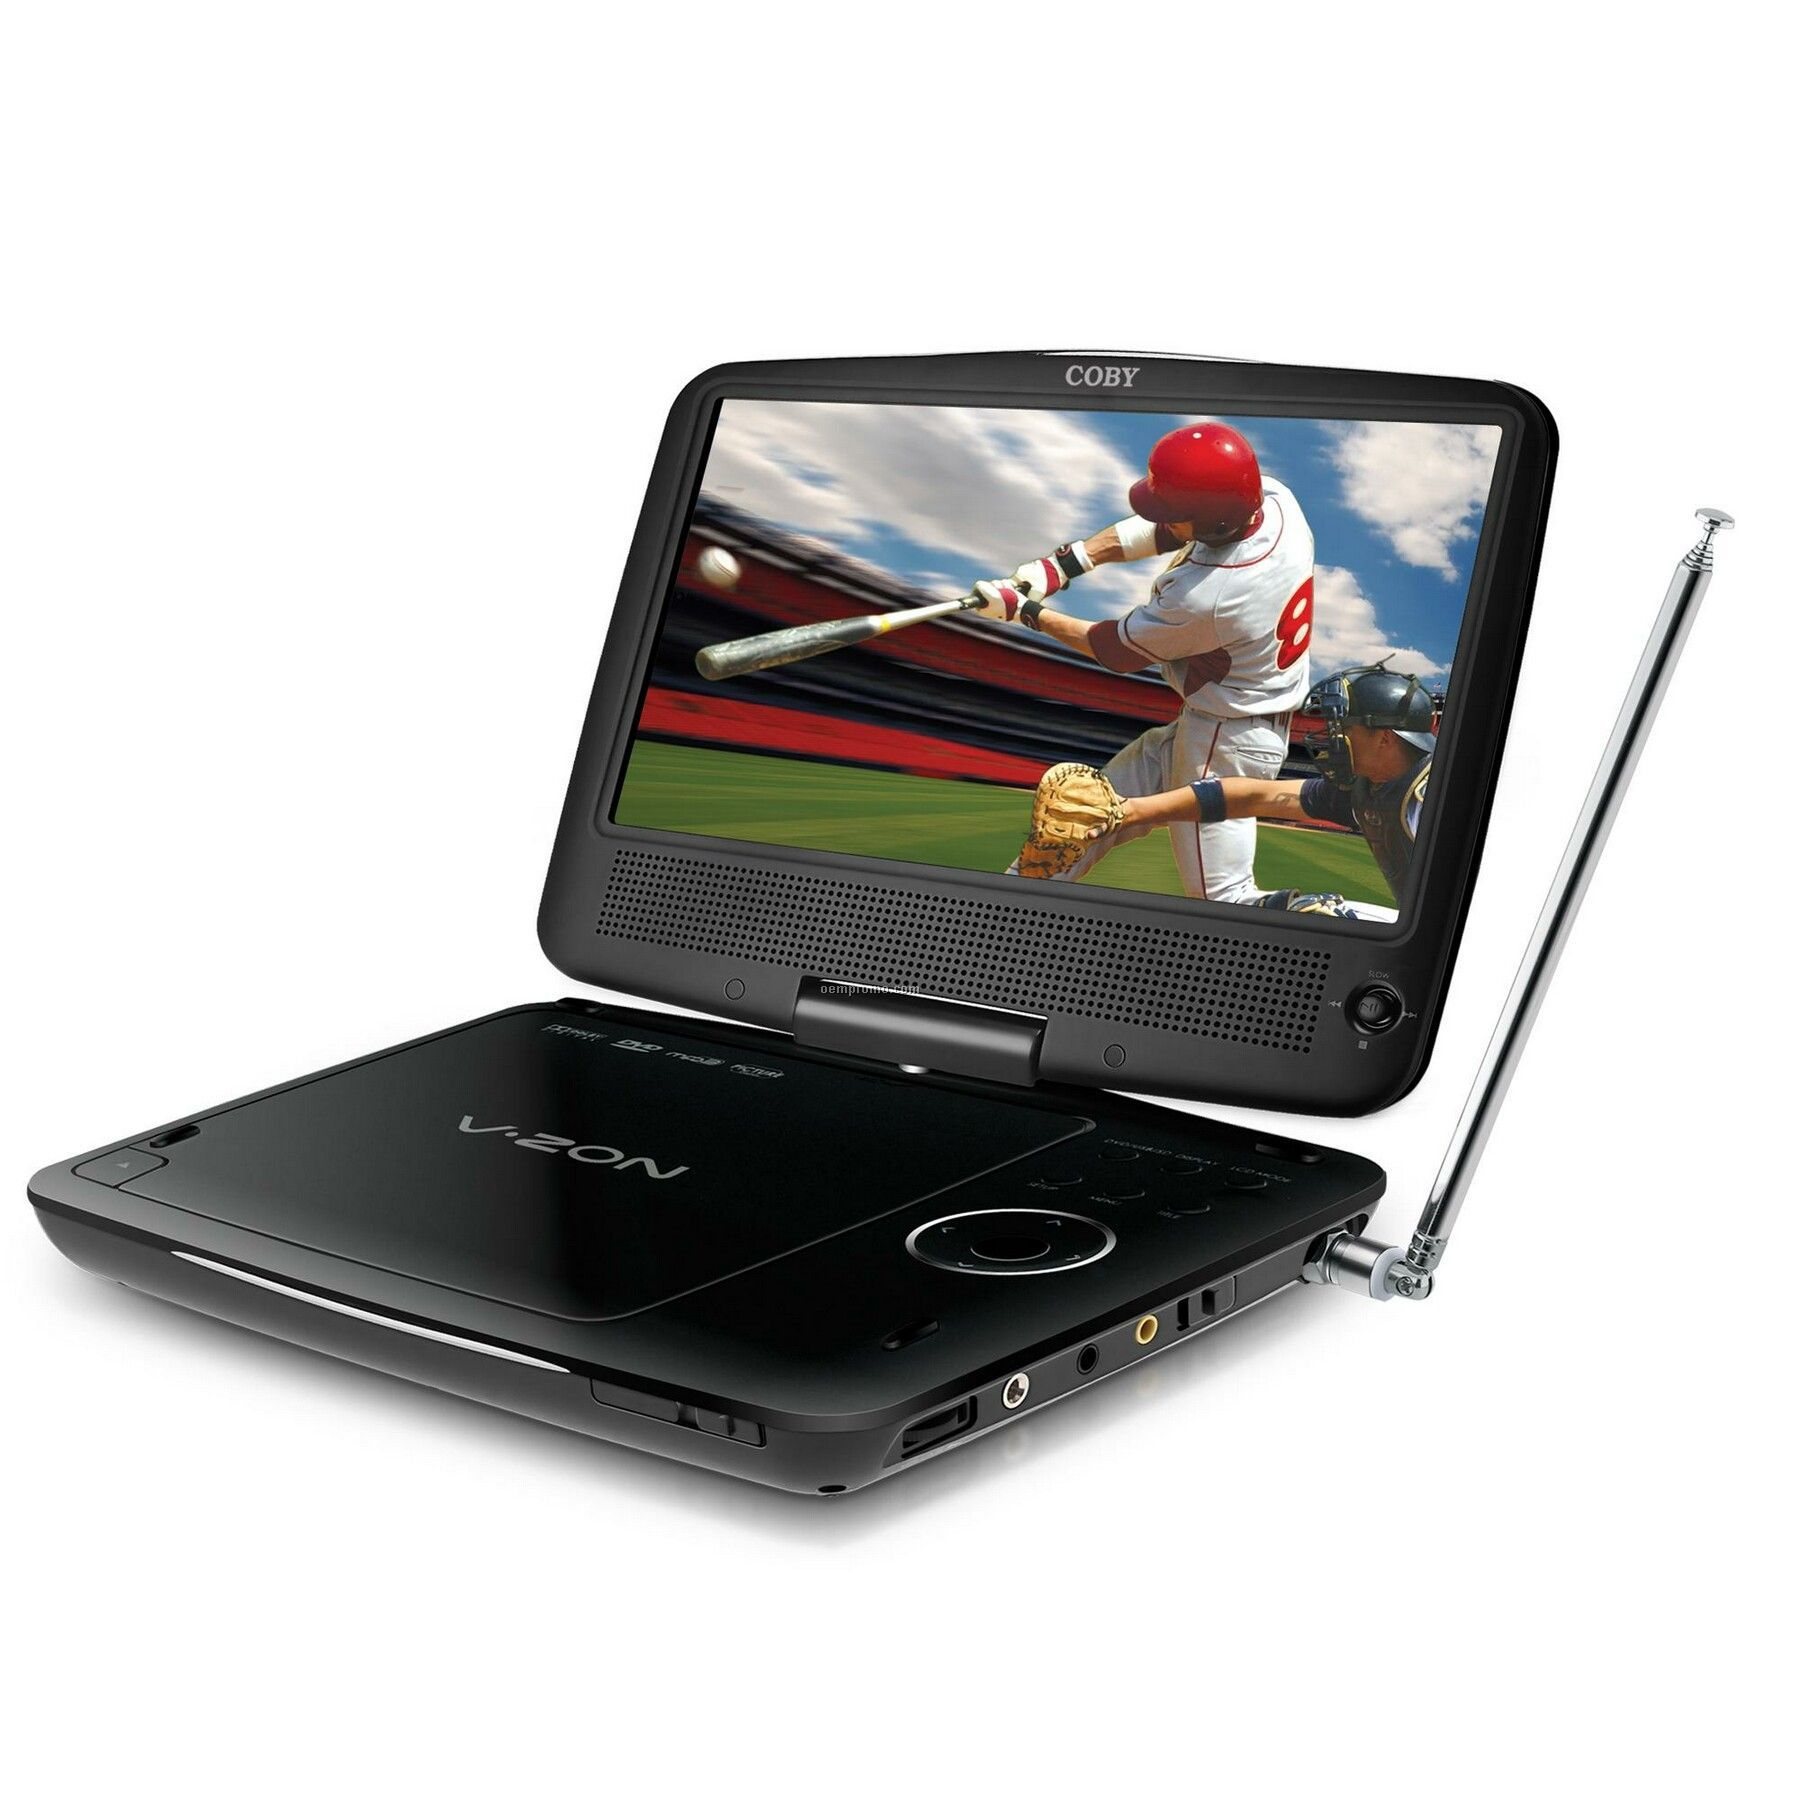 "9"" Portable DVD/CD/Mp3 Player With Atsc Digital Tv"